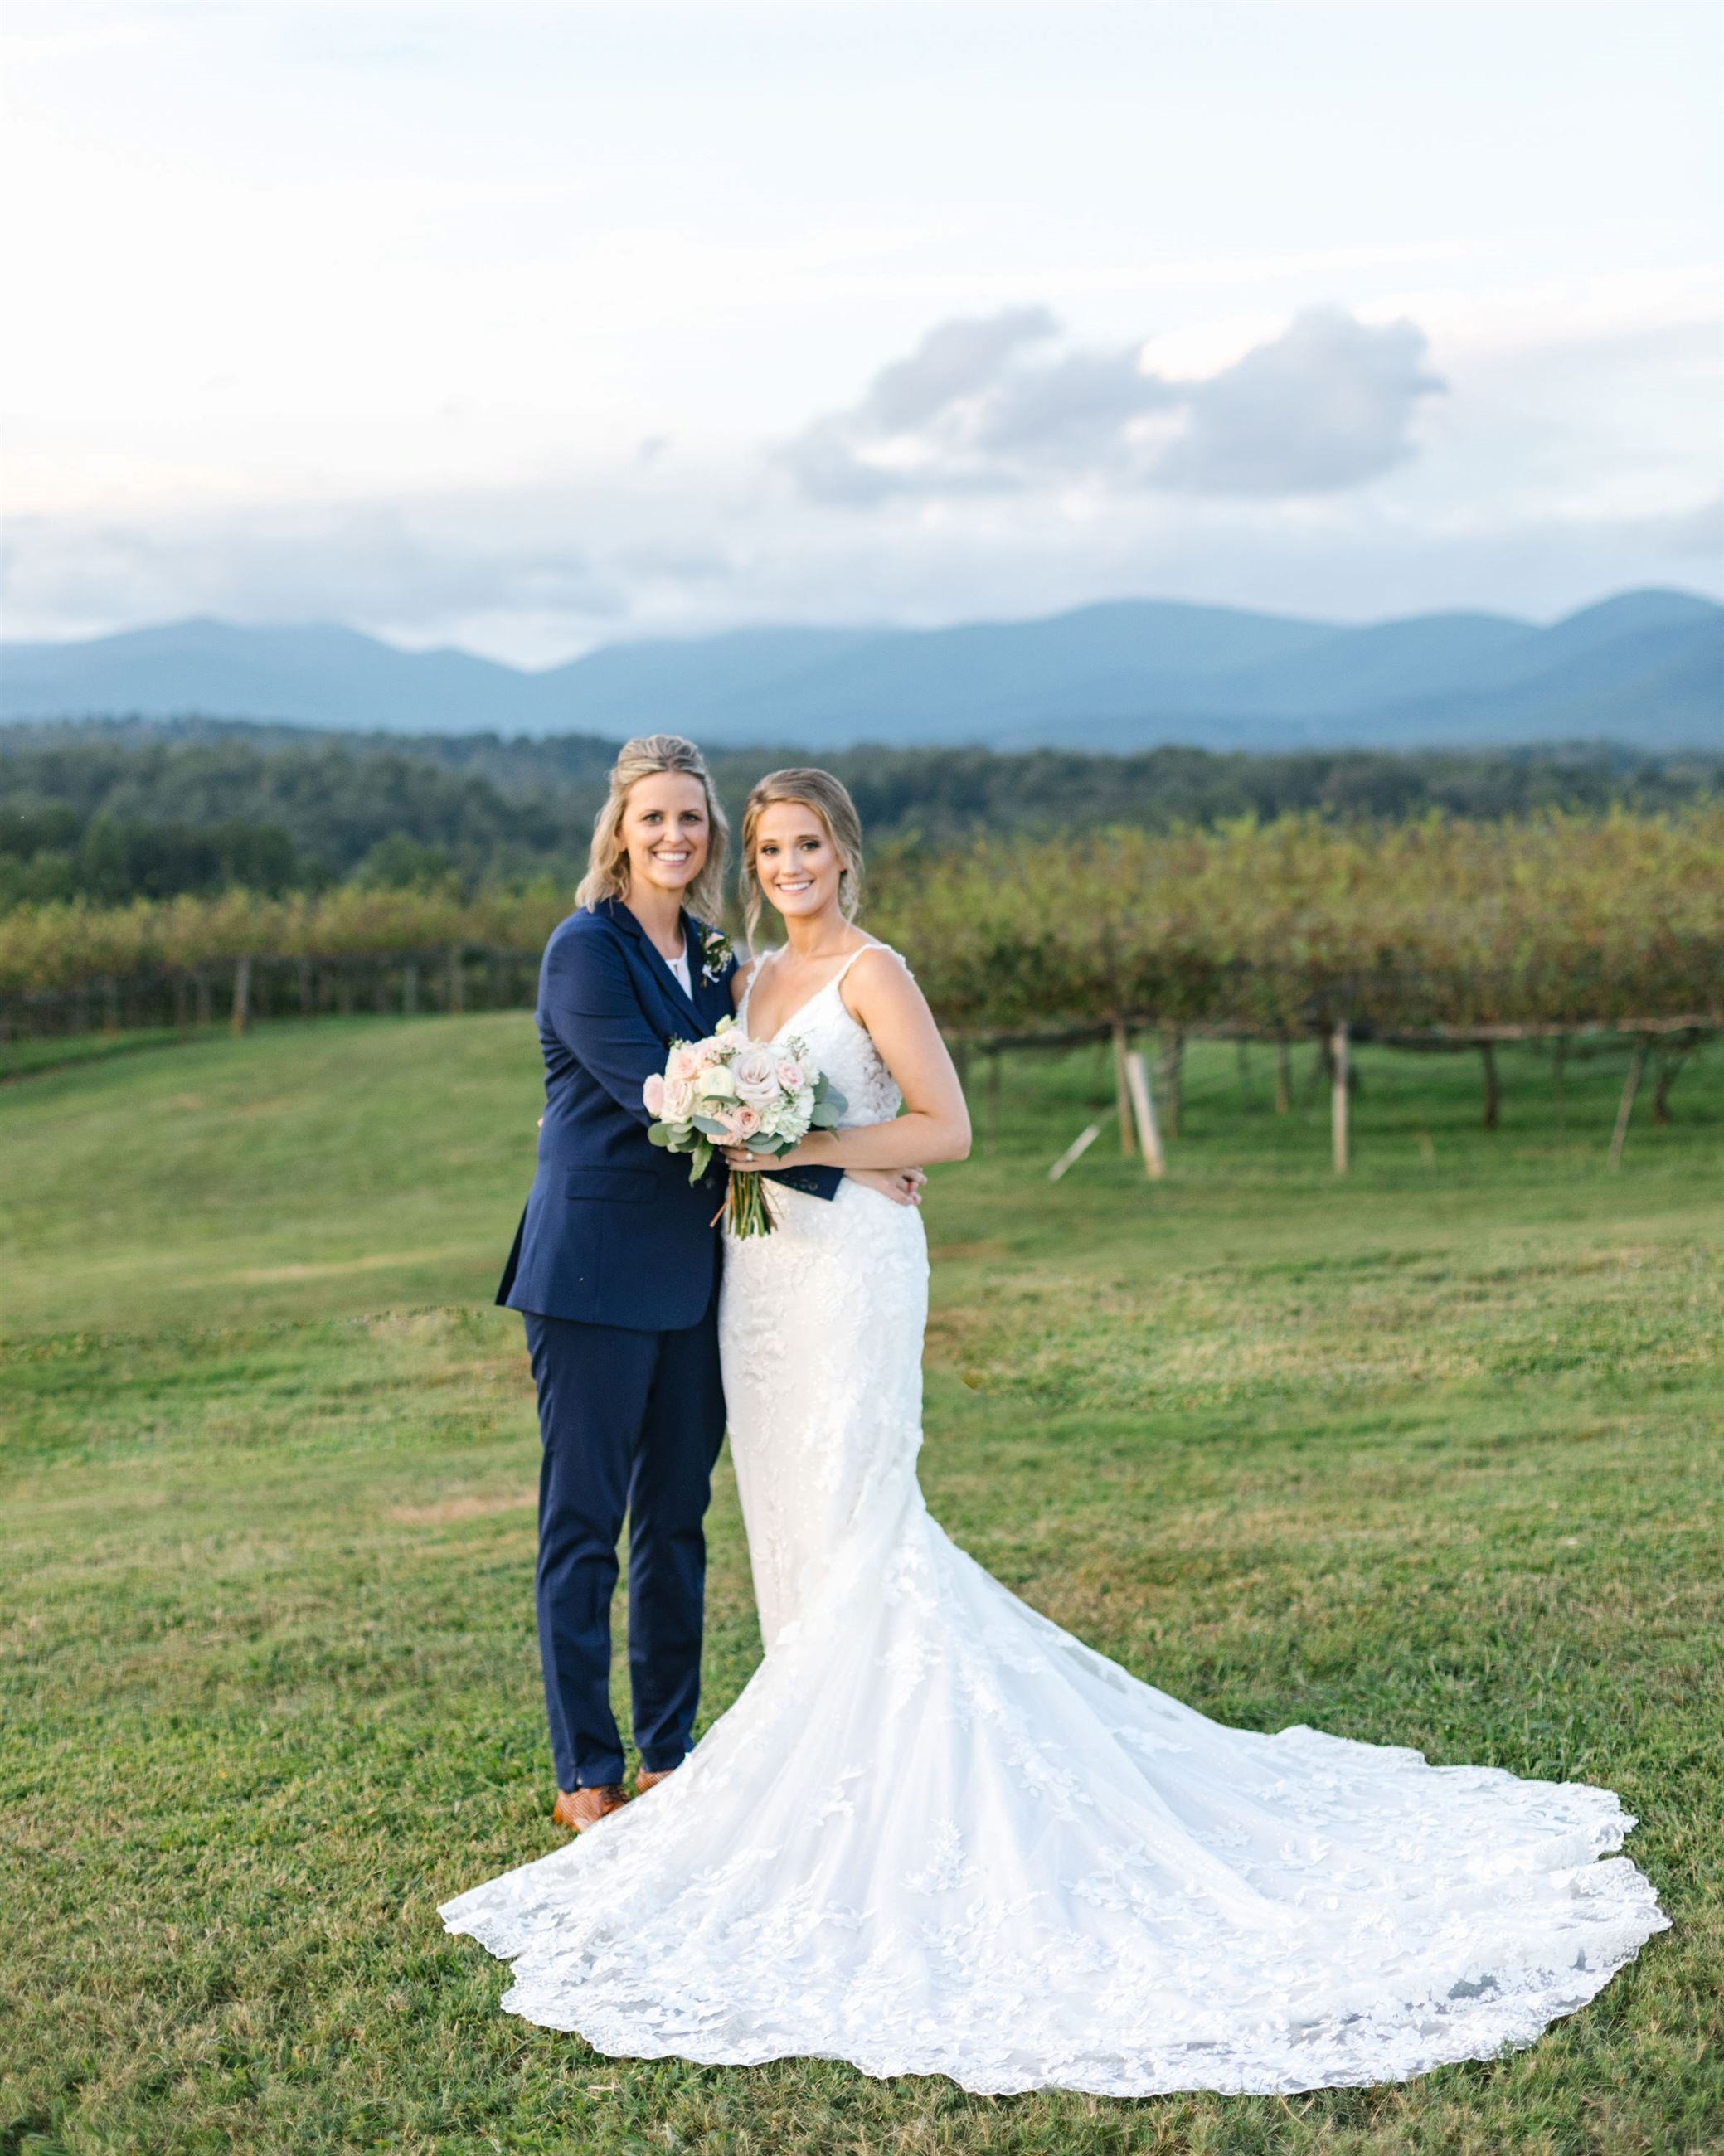 Two brides standing together in vineyard on wedding day